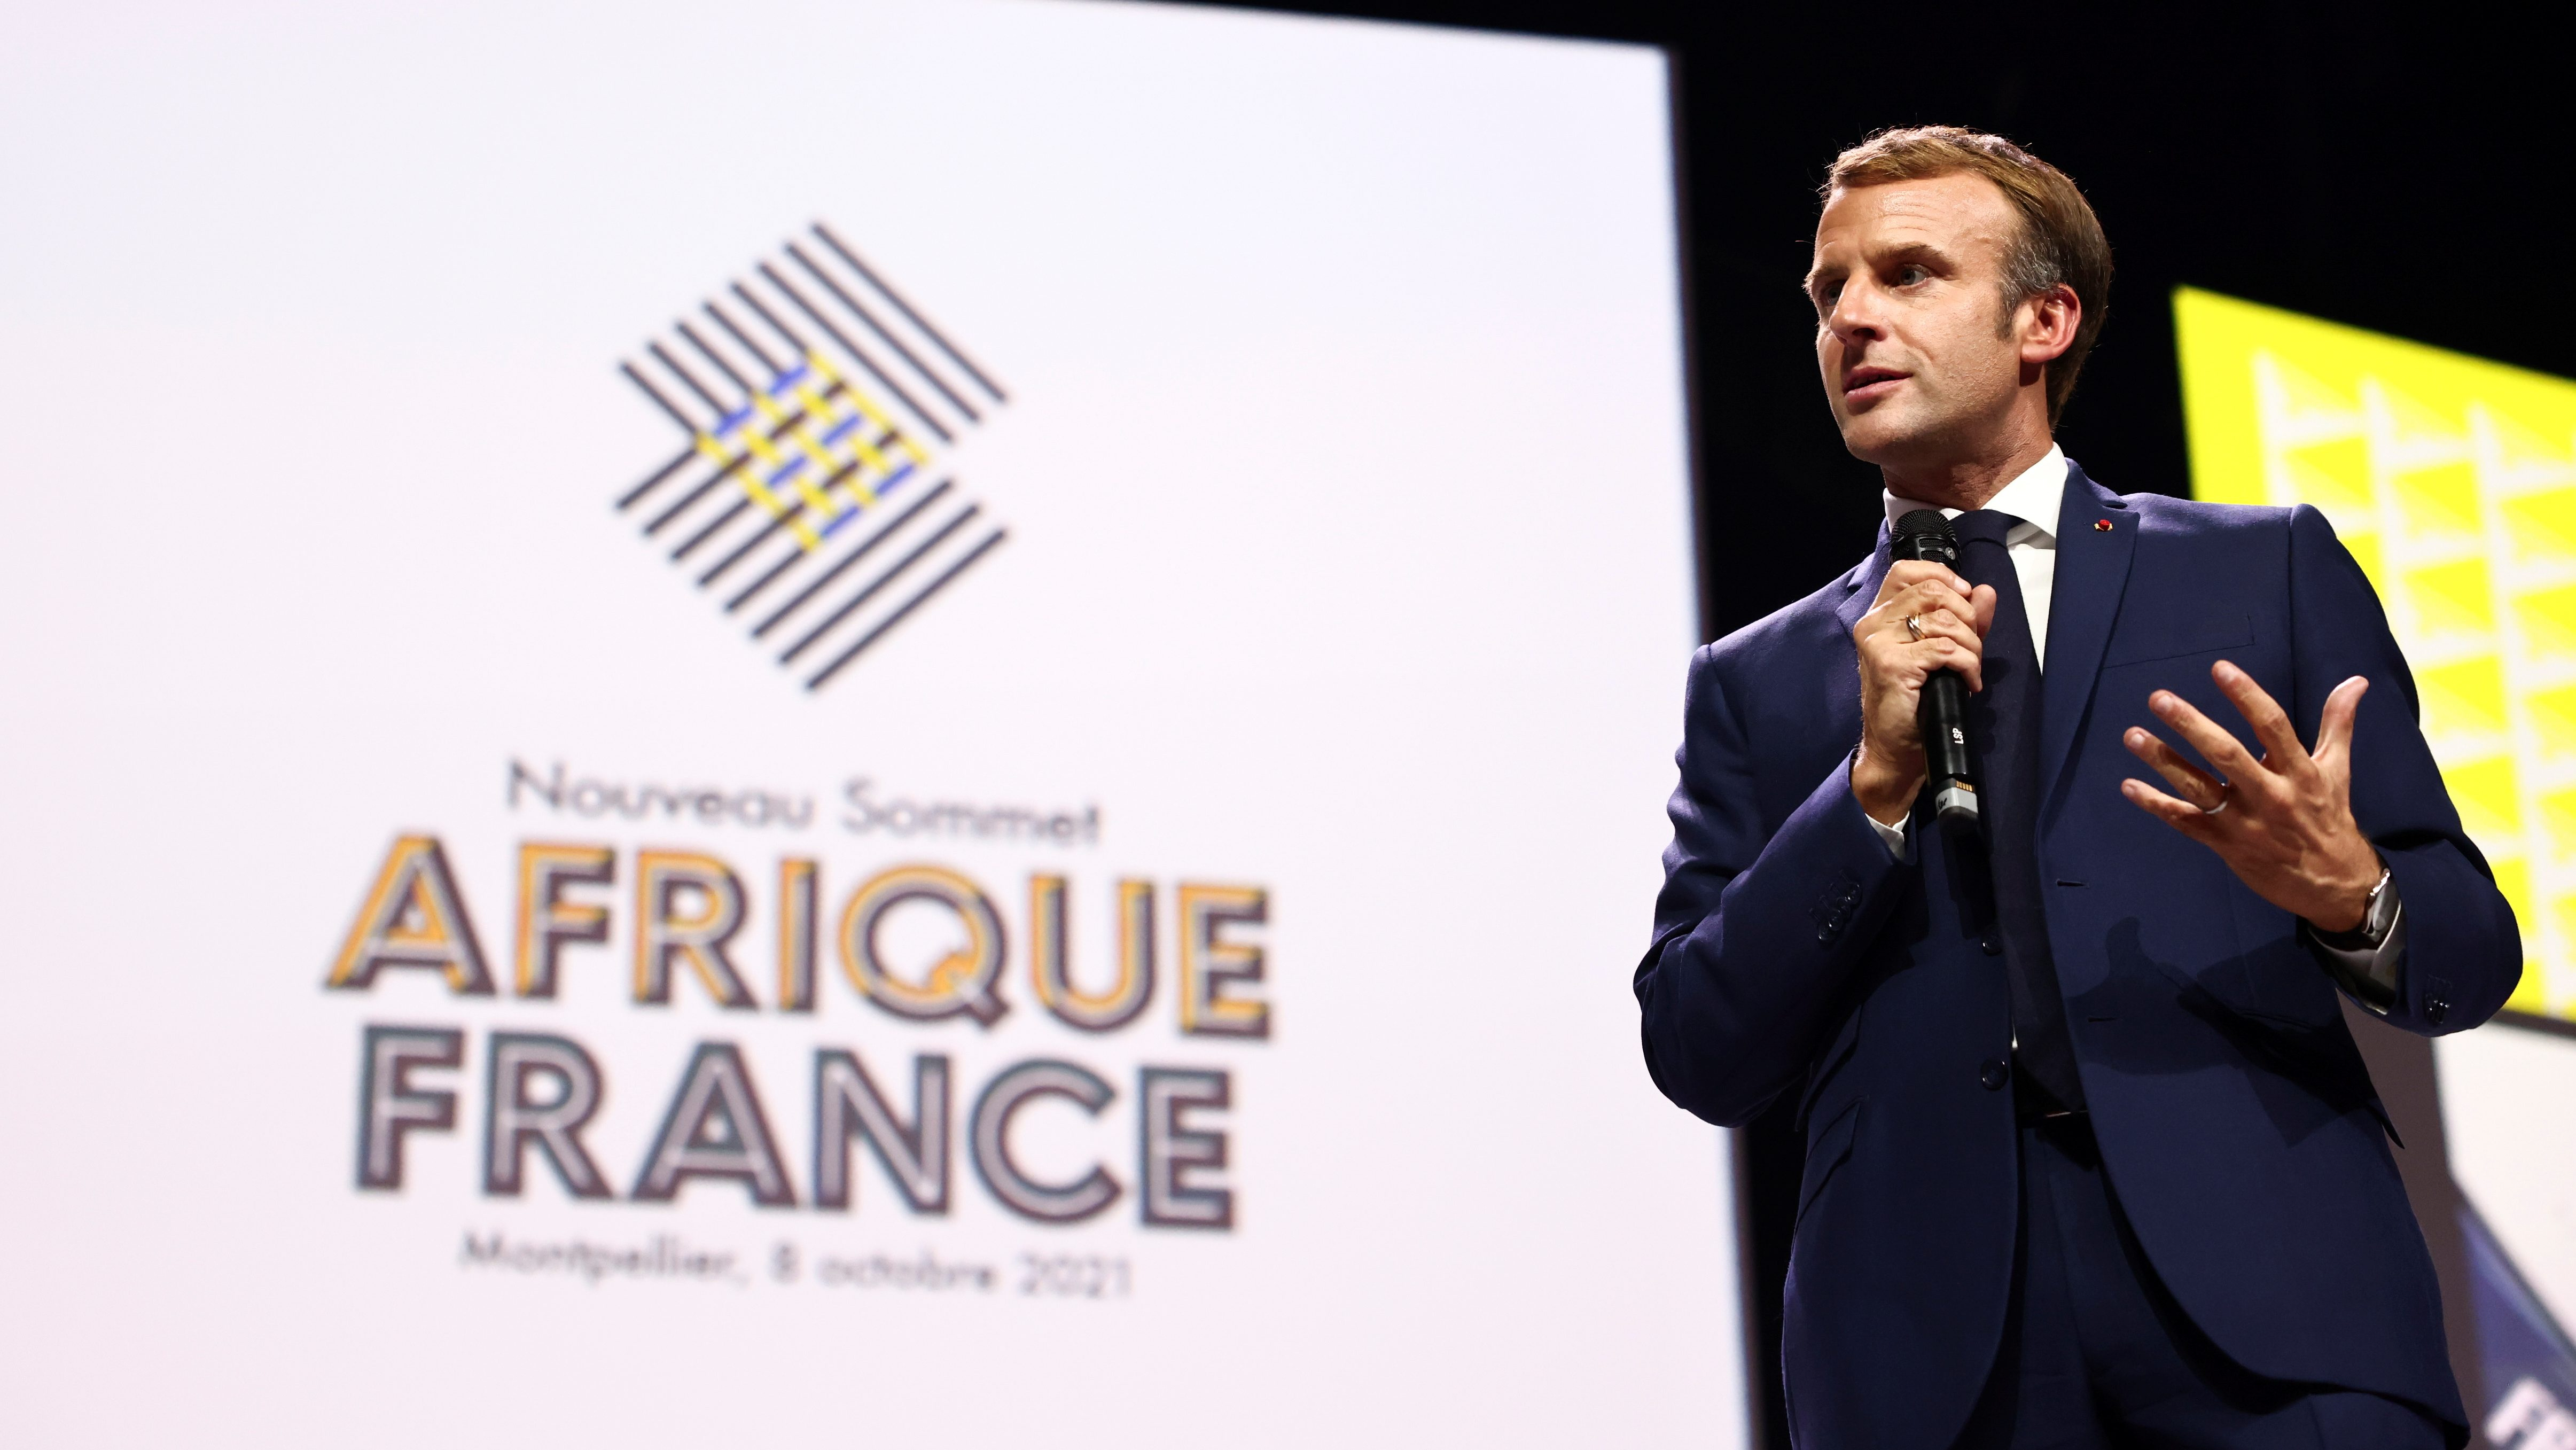 A picture of Emmanuel Macron holding a microphone on stage with a backdrop of the Africa-France summit 2021 behind him